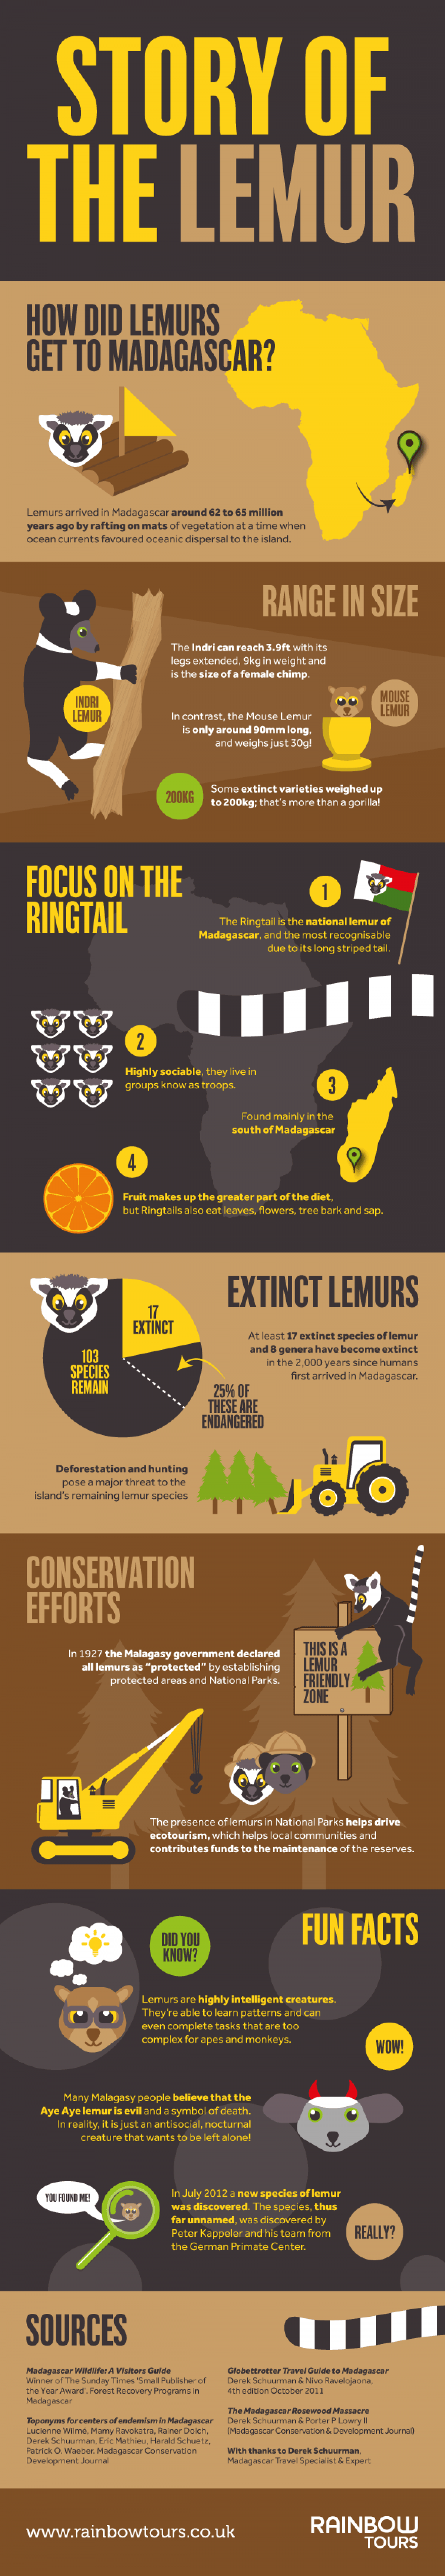 The Story of the Lemur Infographic